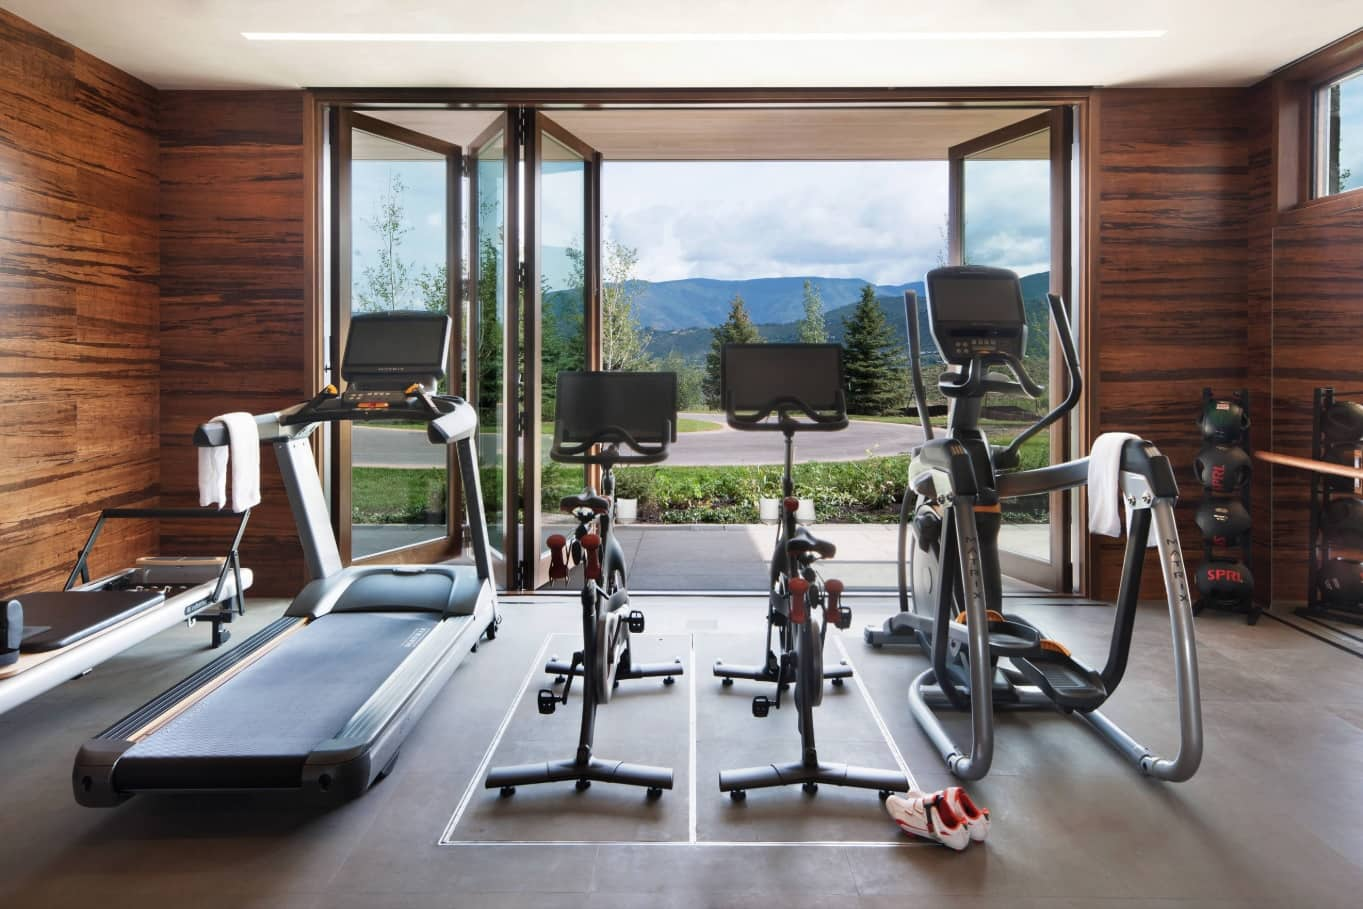 How to Build a Cheap and Effective Home Gym. Chalet styled interior with machine trainers